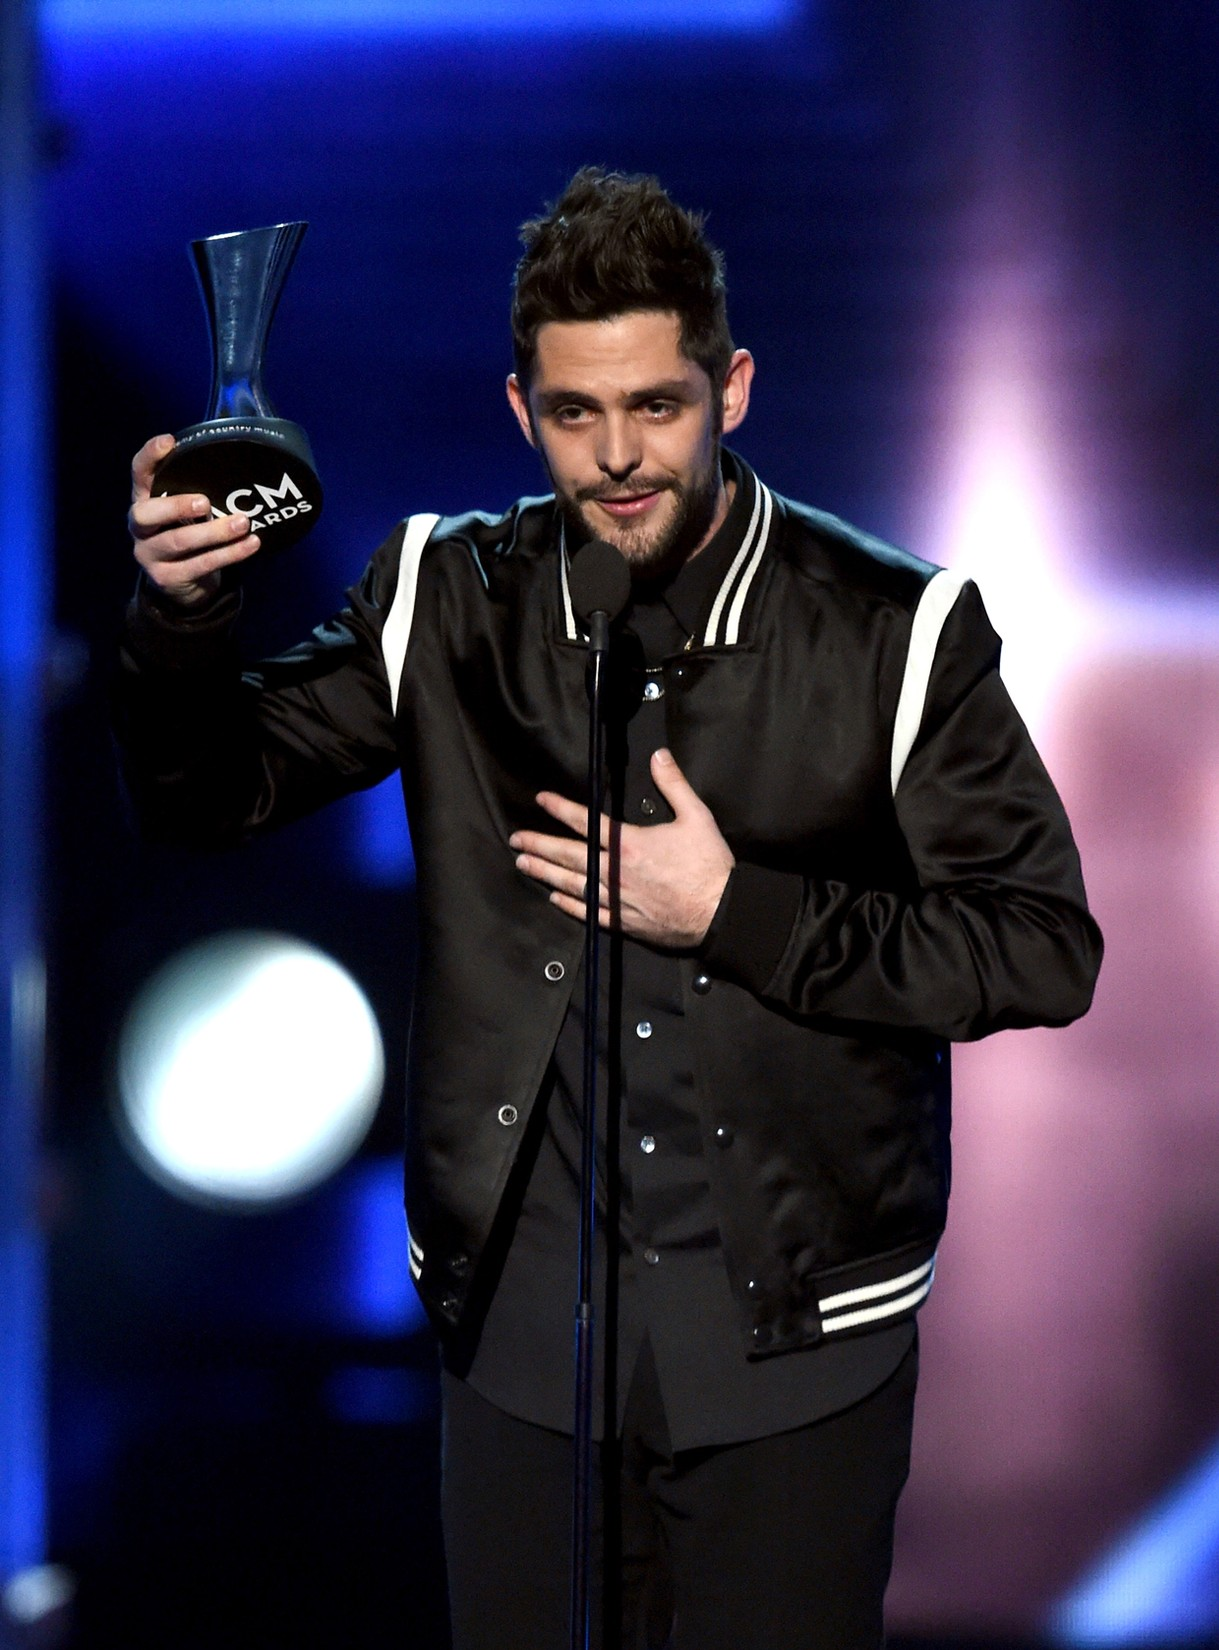 Thomas Rhett accepts the Male Vocalist of the Year award onstage during the 52nd Academy Of Country Music Awards at T-Mobile Arena on April 2, 2017 in Las Vegas.